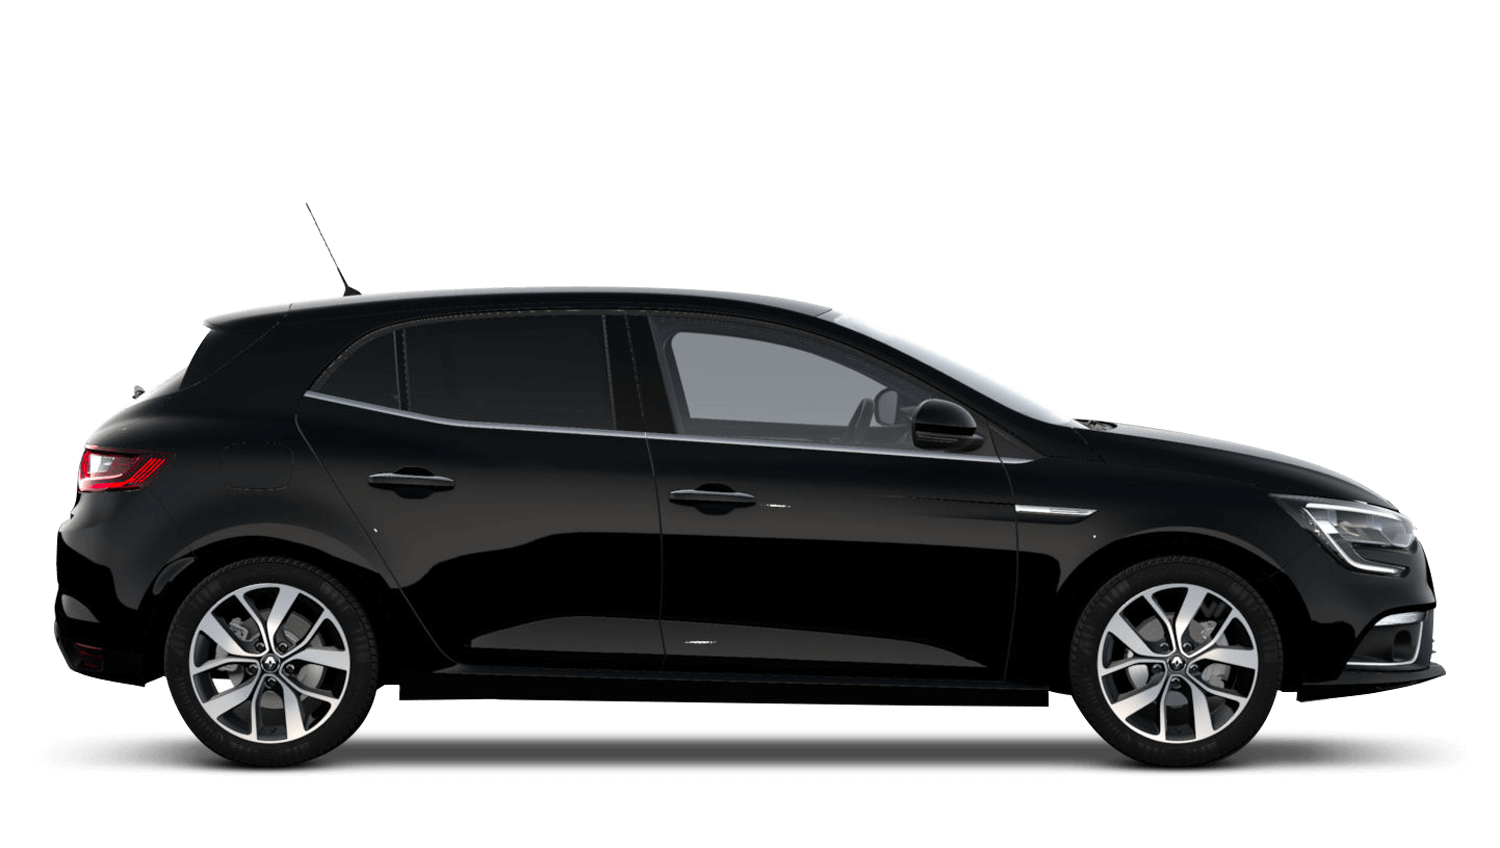 Diamond Black New Renault MEGANE